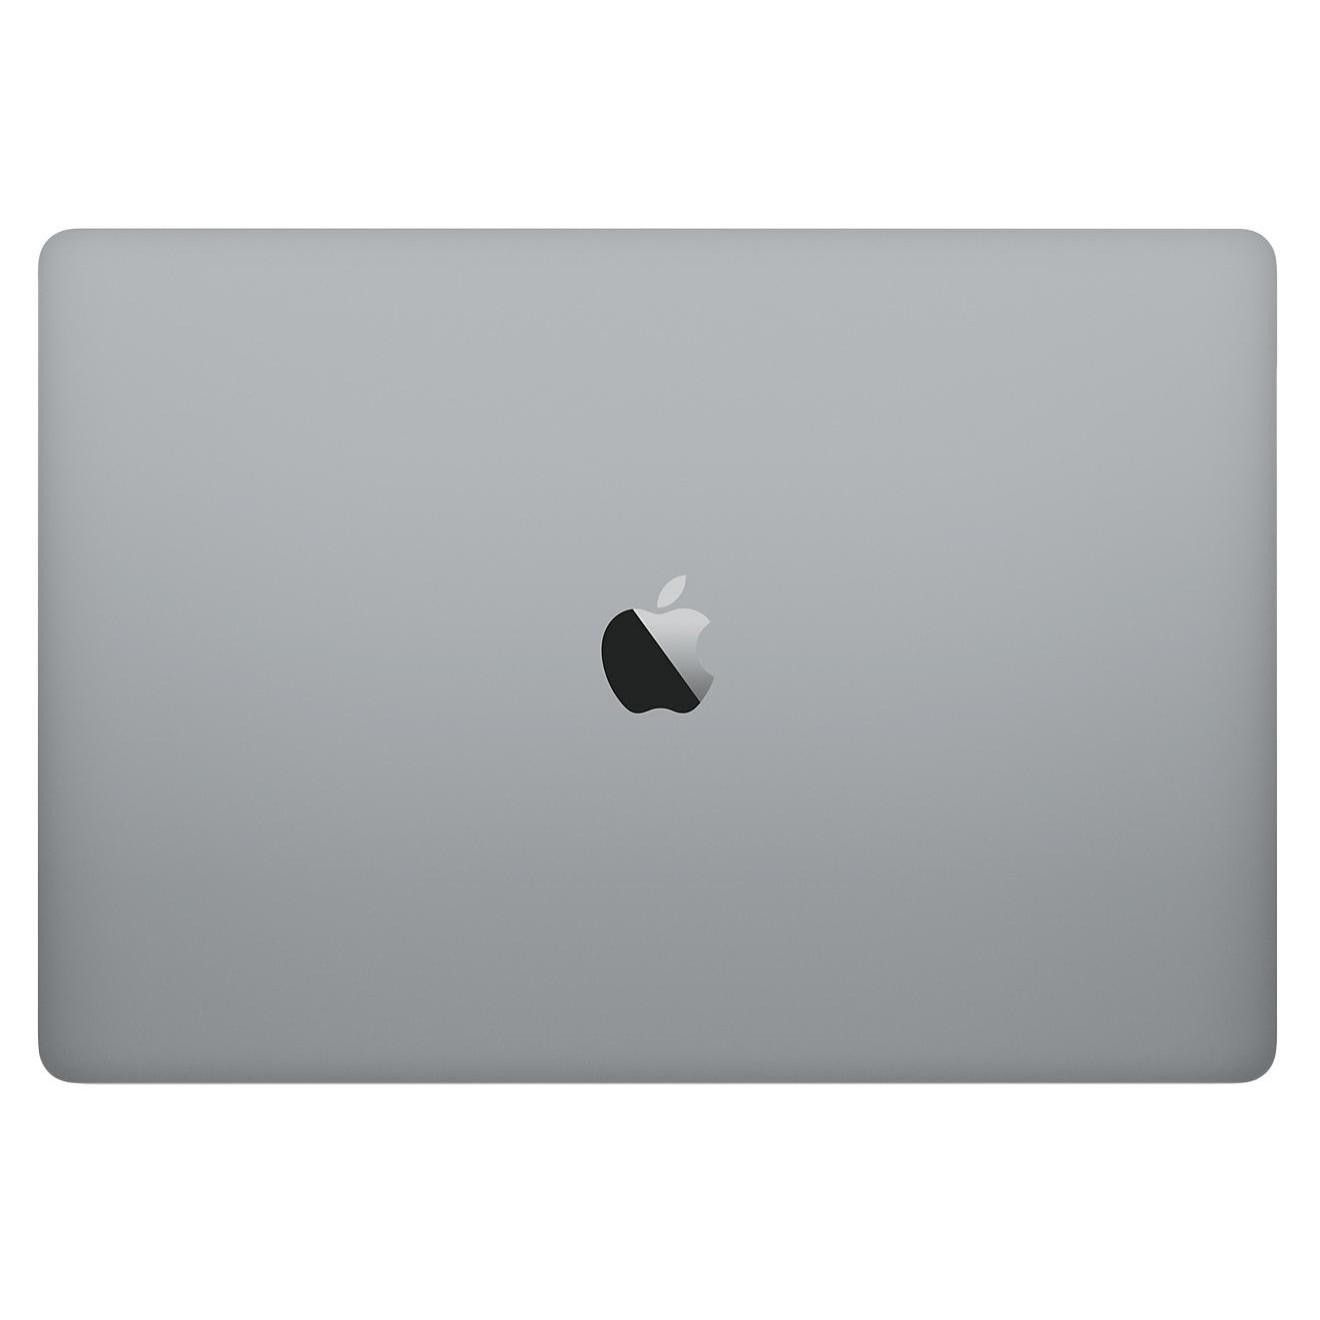 "Ноутбук Apple MacBook Pro 15"" Touch Bar 256 GB SSD Space Grey (MPTR2), картинка 4"